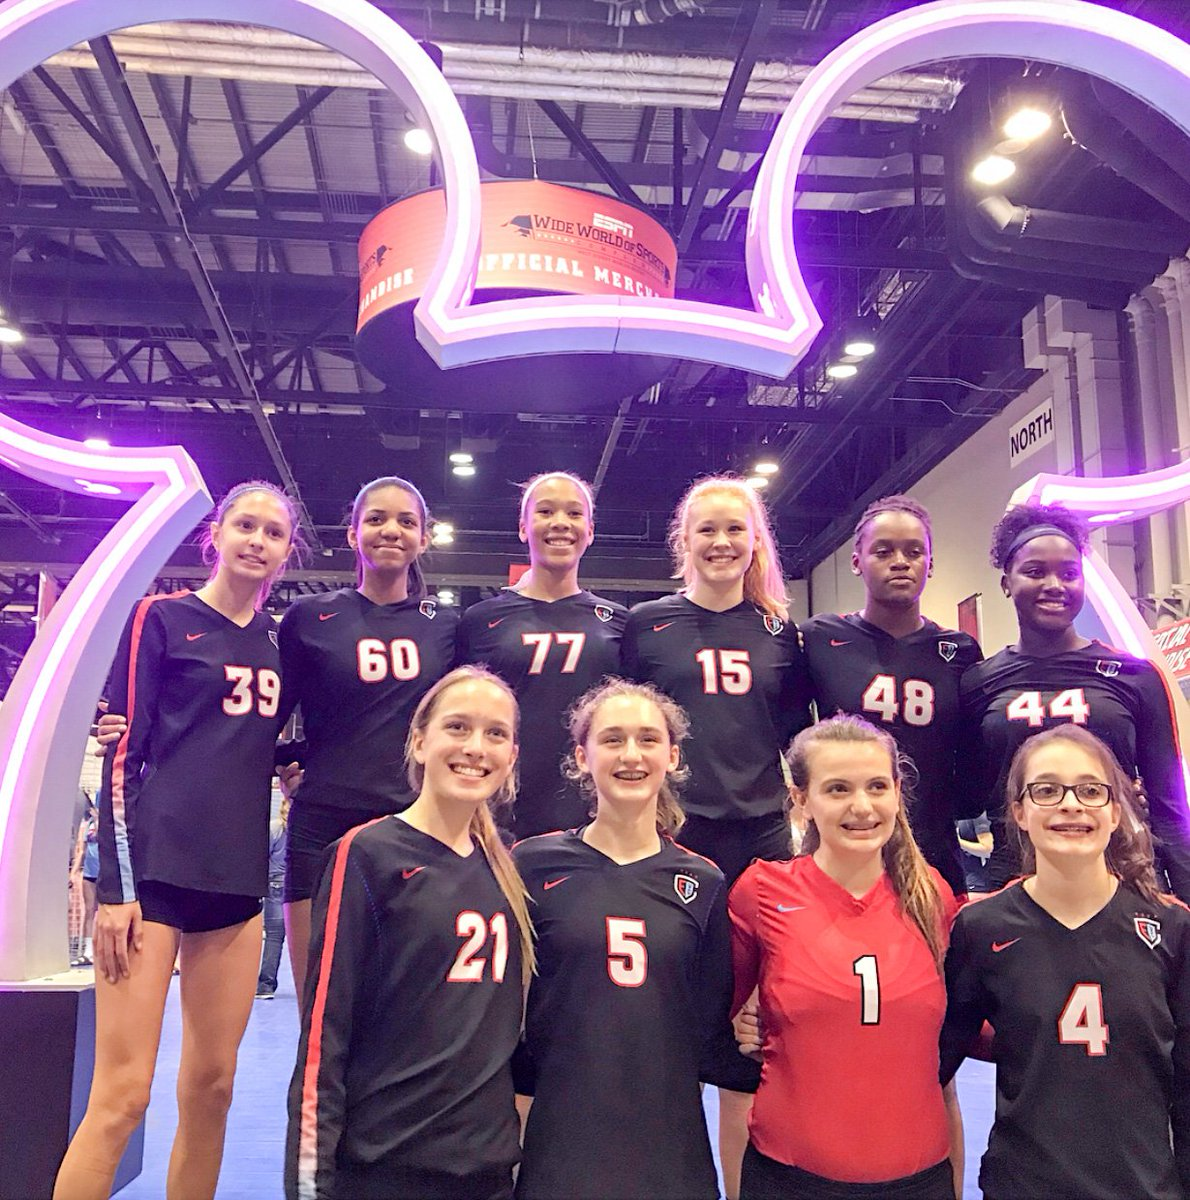 Fxw Chicago On Twitter Congratulations To Fxw Alumnae Lily B Katie J Ariana J Gigi K And Zoe W And To Current Student Ava S Members Of The 14u Chicago Elite Volleyball